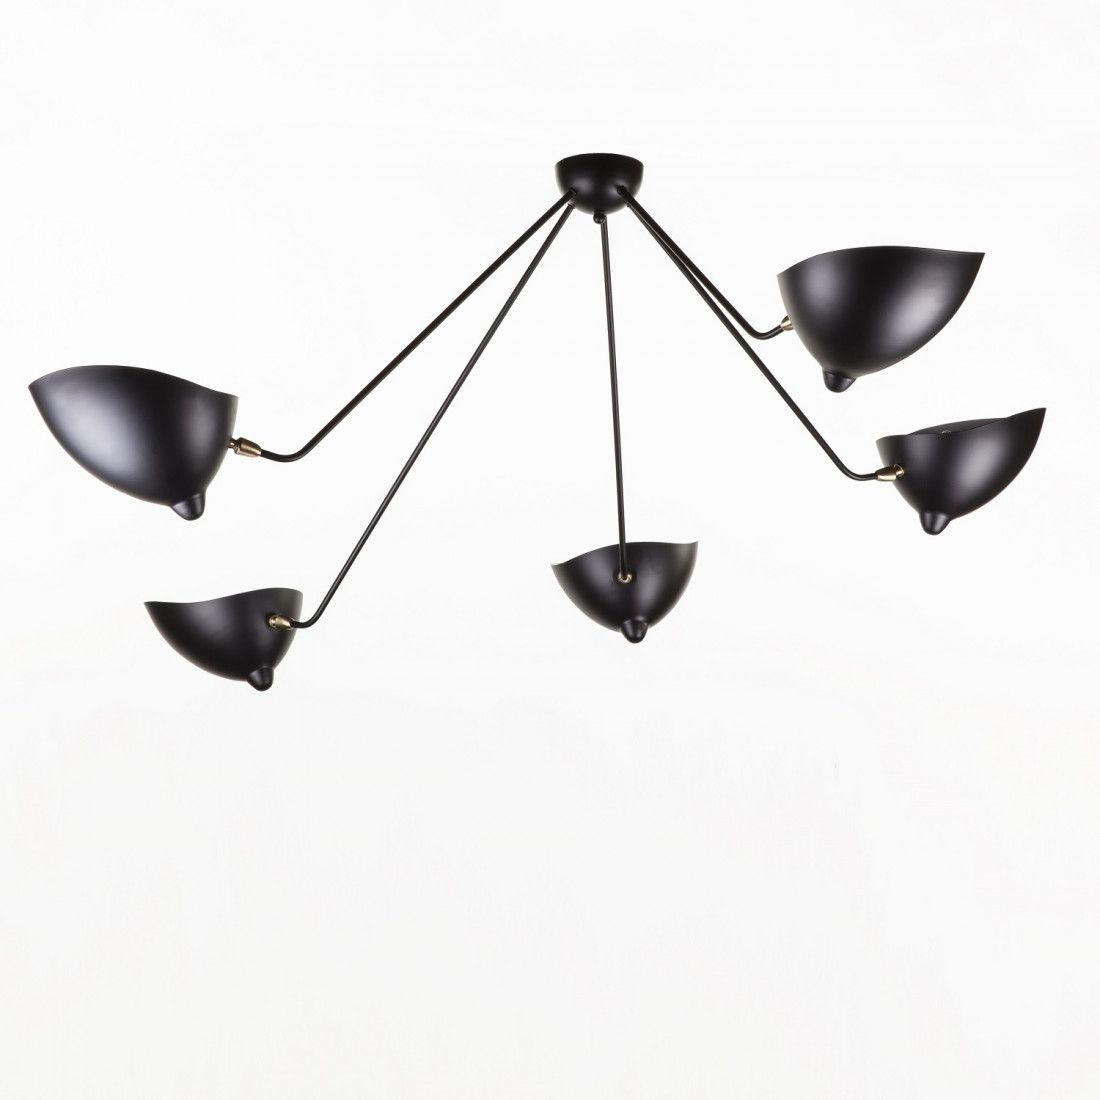 Mid Century Modern Reproduction 5 Arm Mcl Sp5 Spider Ceiling Lamp Inspired By Serge Mouille Ceiling Lamp Serge Mouille Ceiling Lamp Lamp